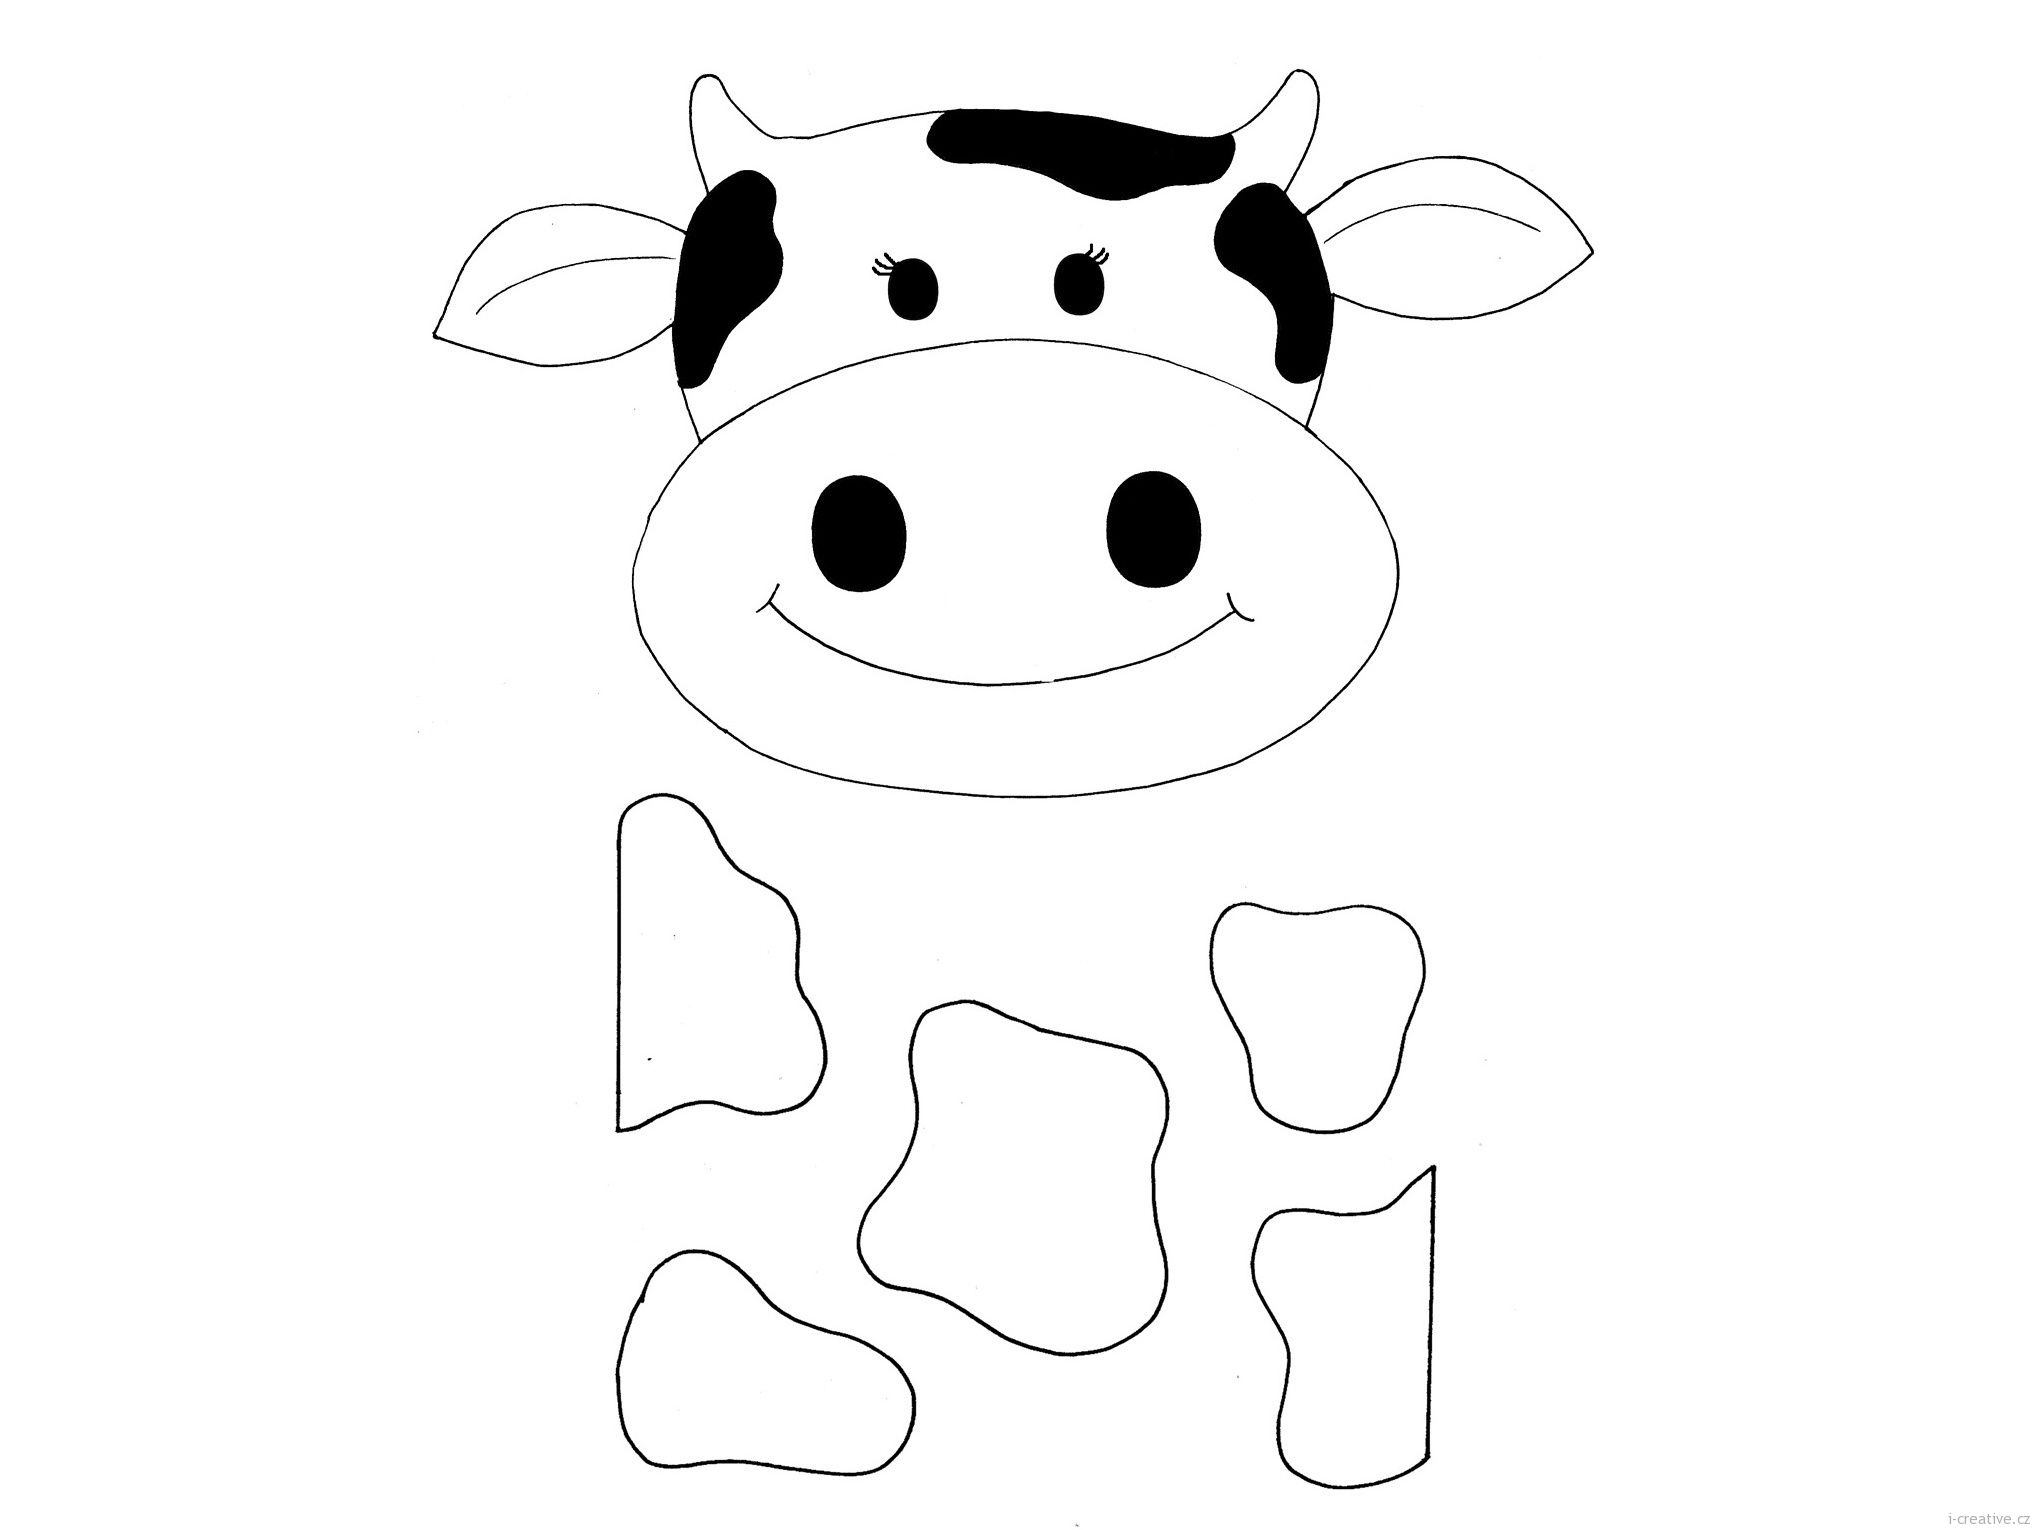 Cows Coloring Pages To Download And Print For Free